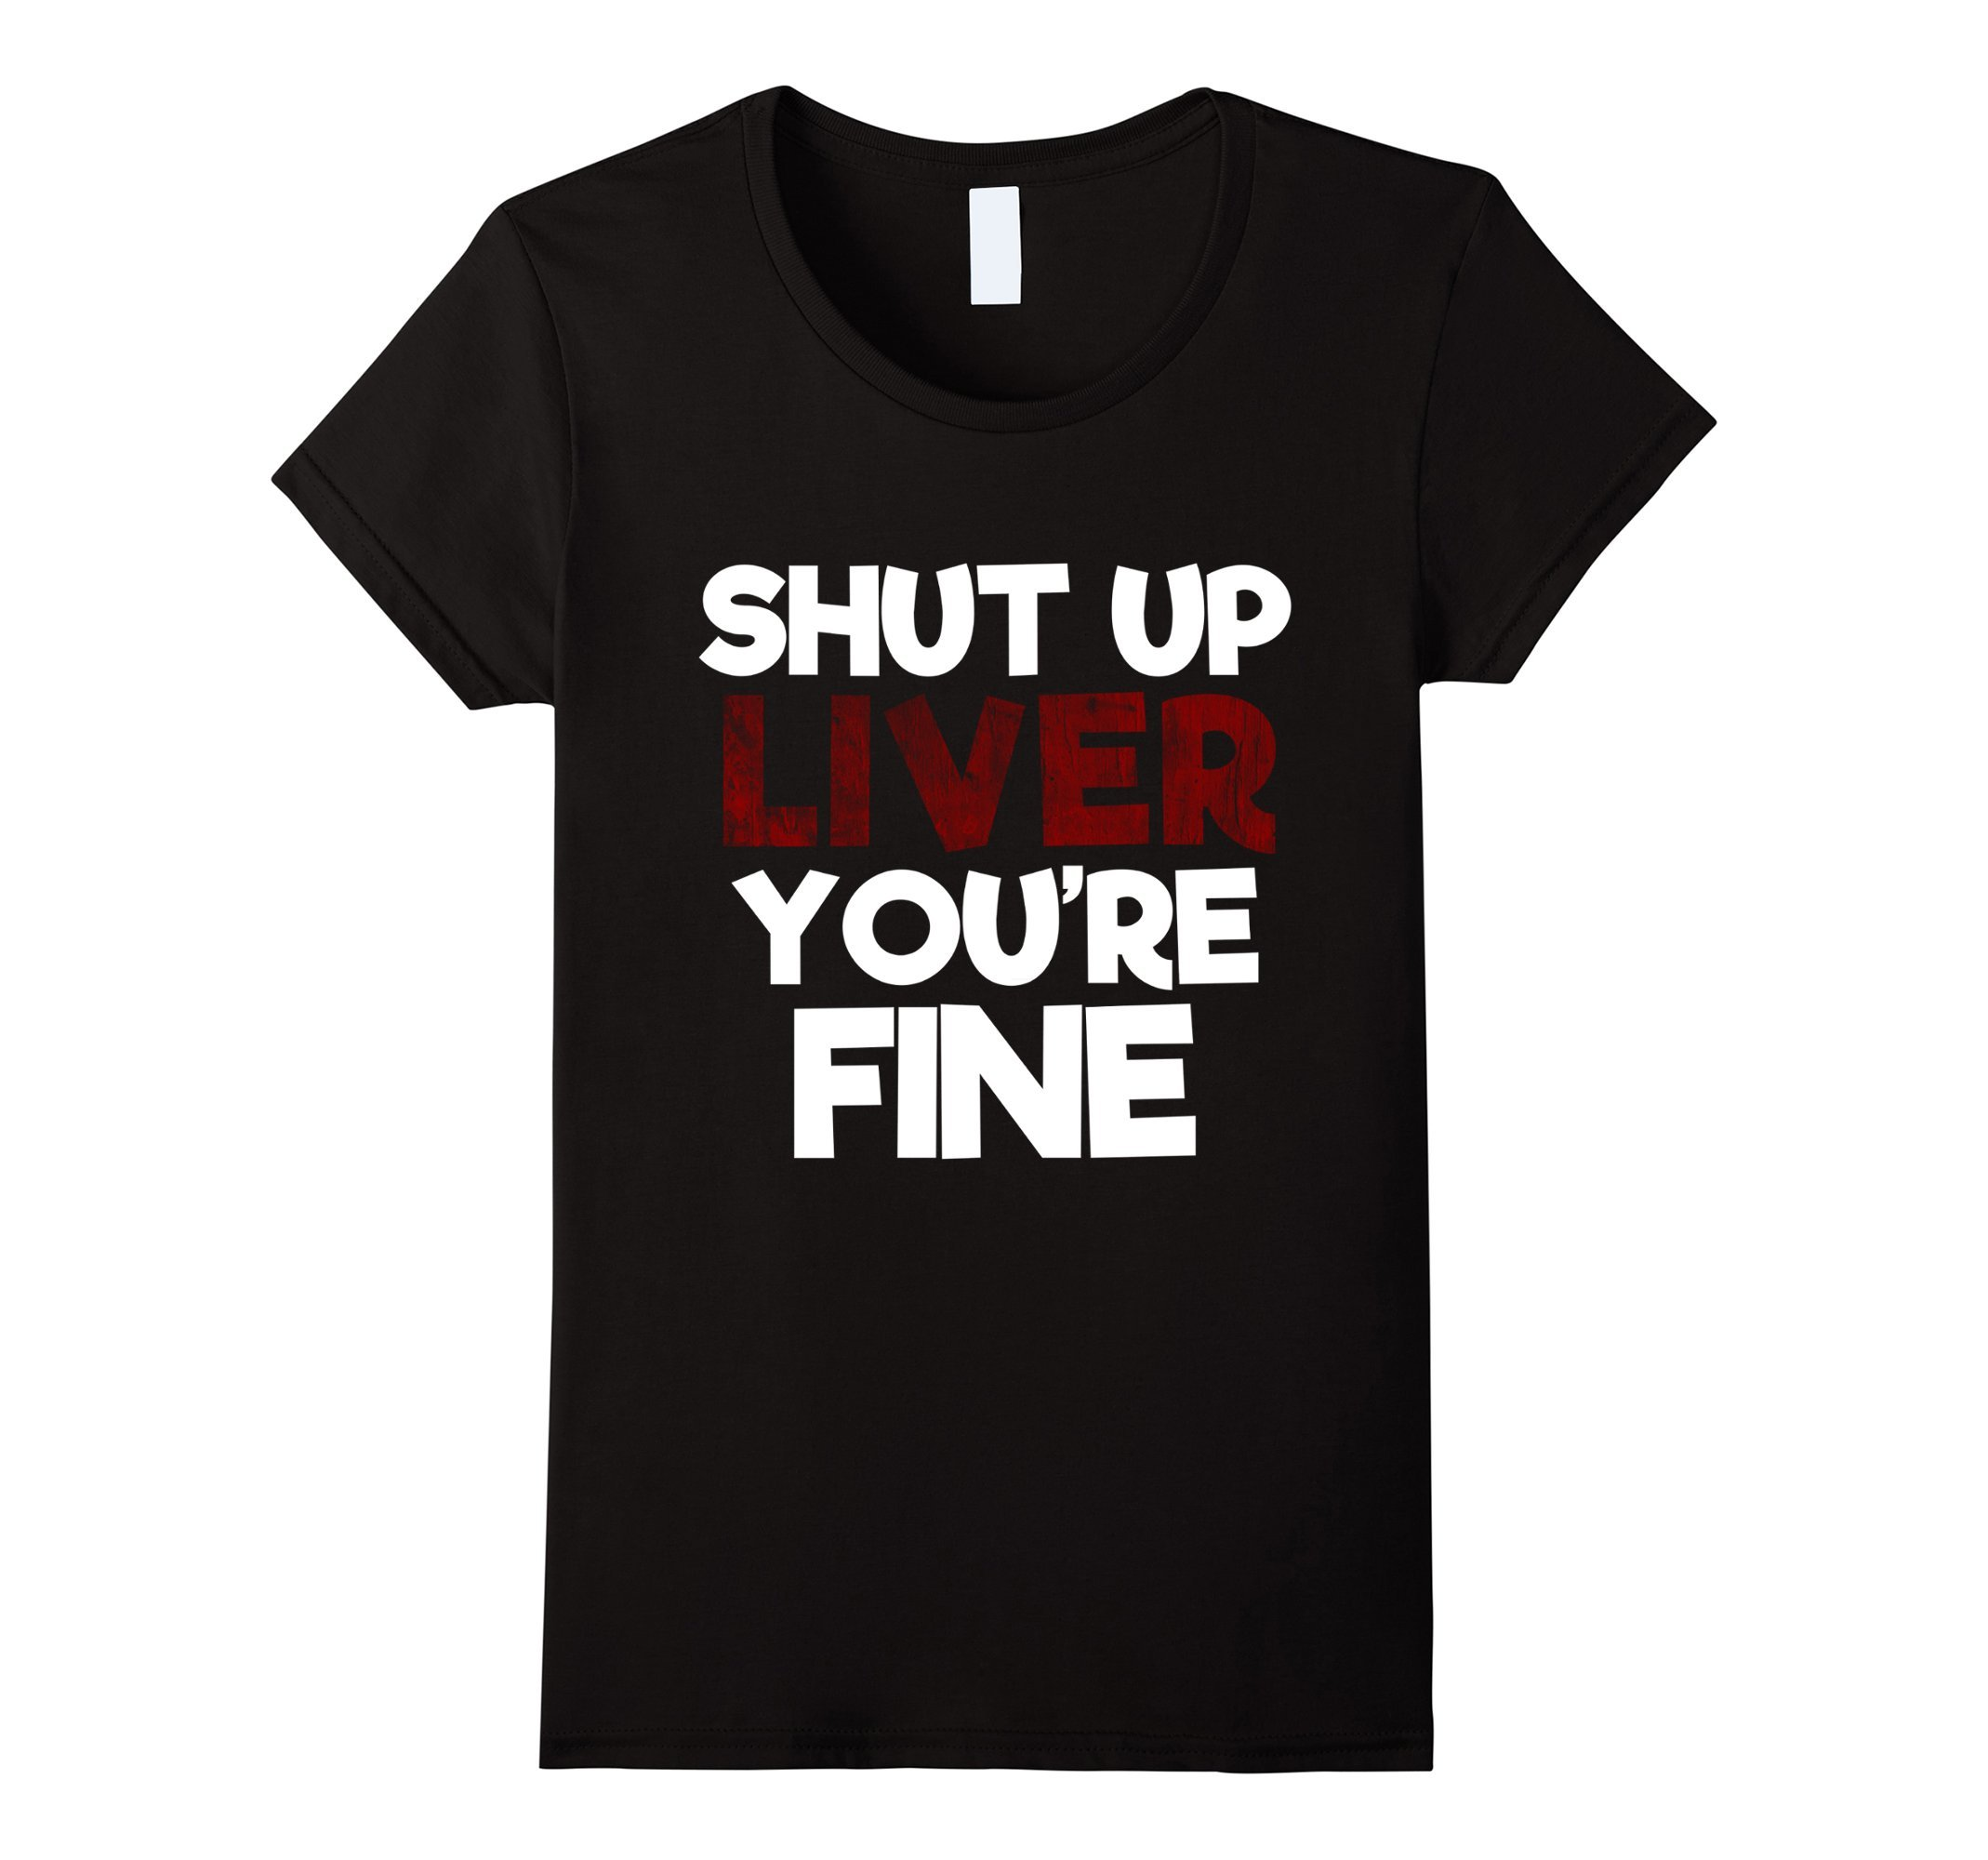 Womens Shut Up Liver Your'e Fine Funny Party Drinking Tee XL Black